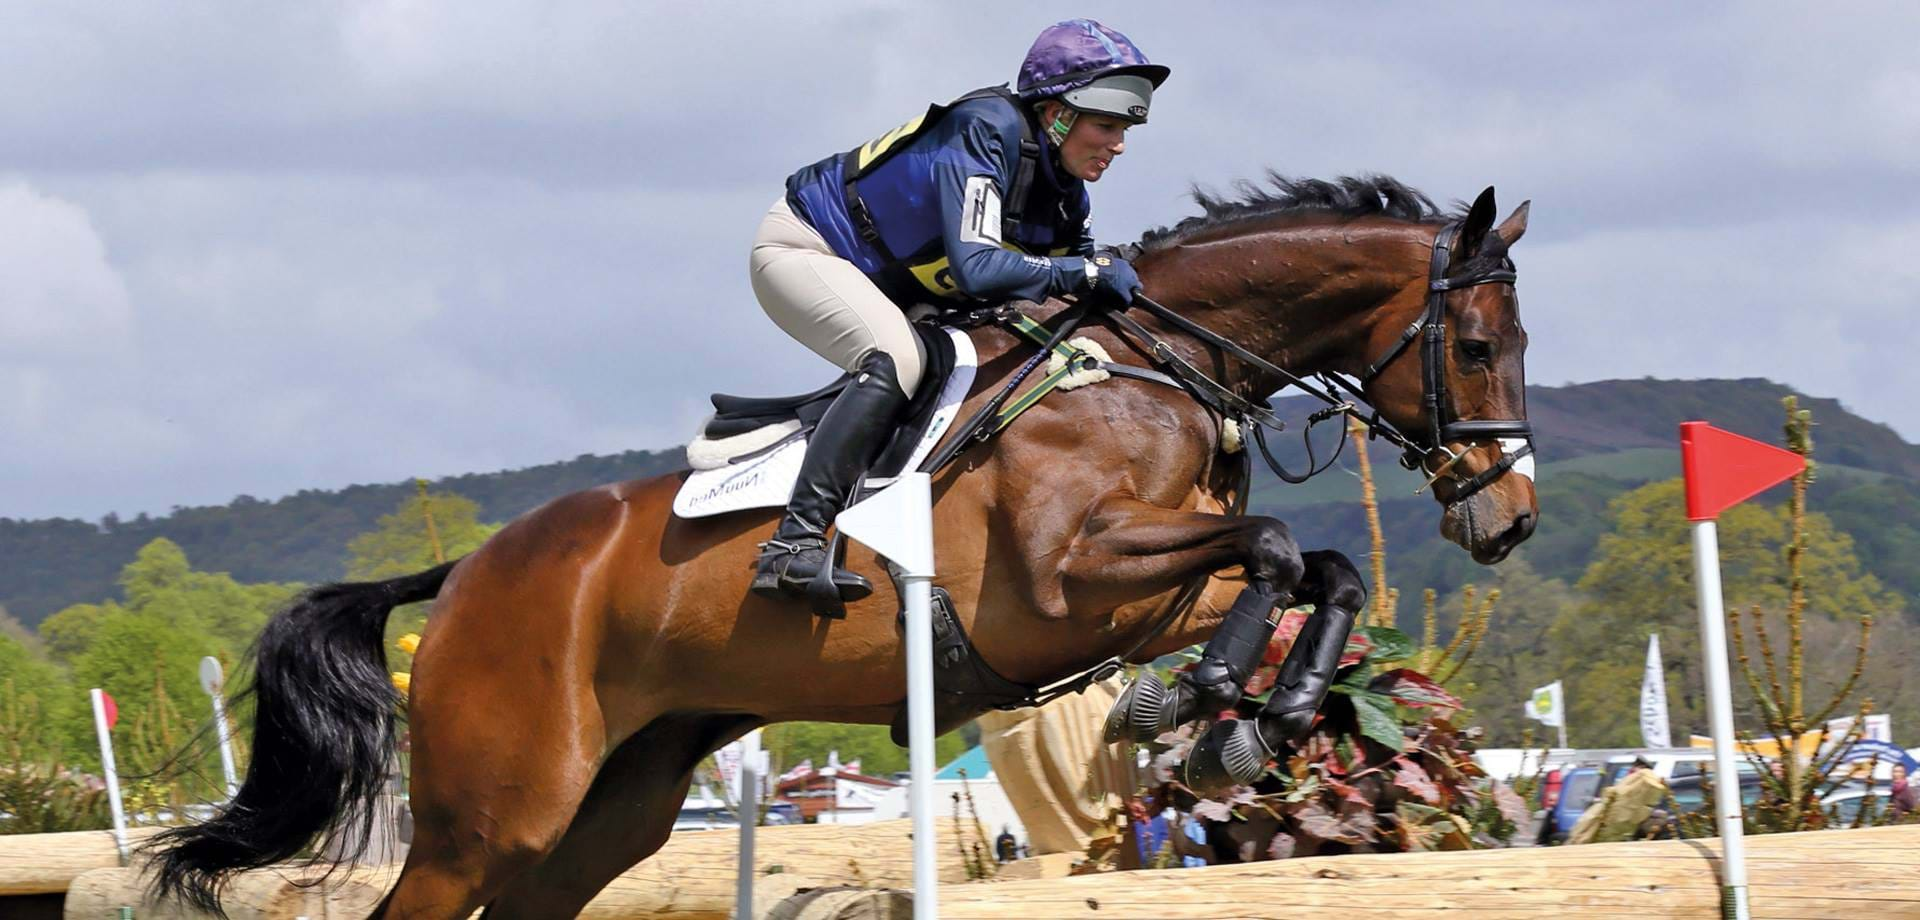 Eventing superstars descend on Chatsworth for the  Dodson & Horrell Chatsworth International Horse Trials